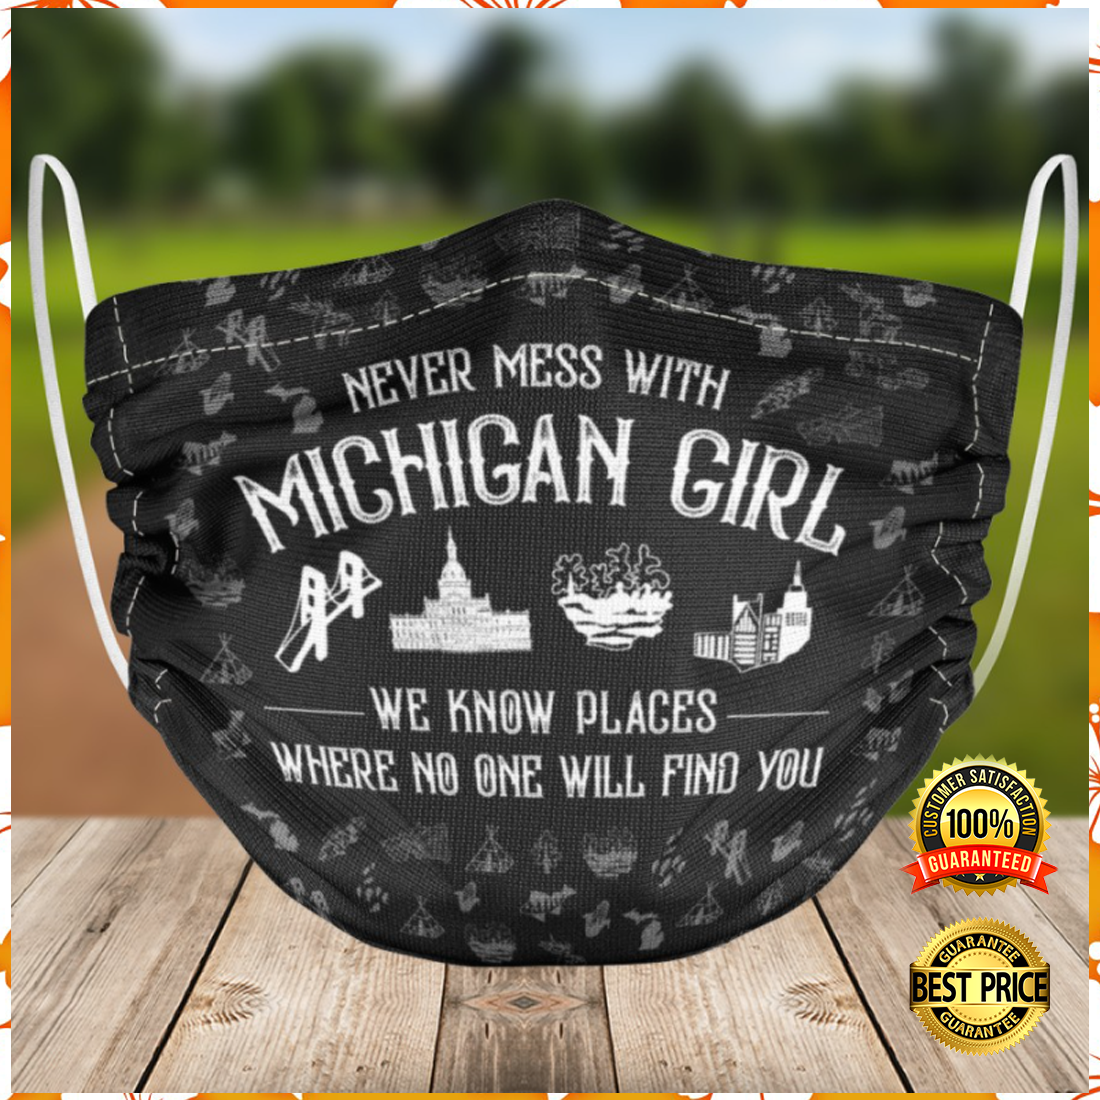 NEVER MESS WITH MICHIGAN GIRL CLOTH FACE MASK 6